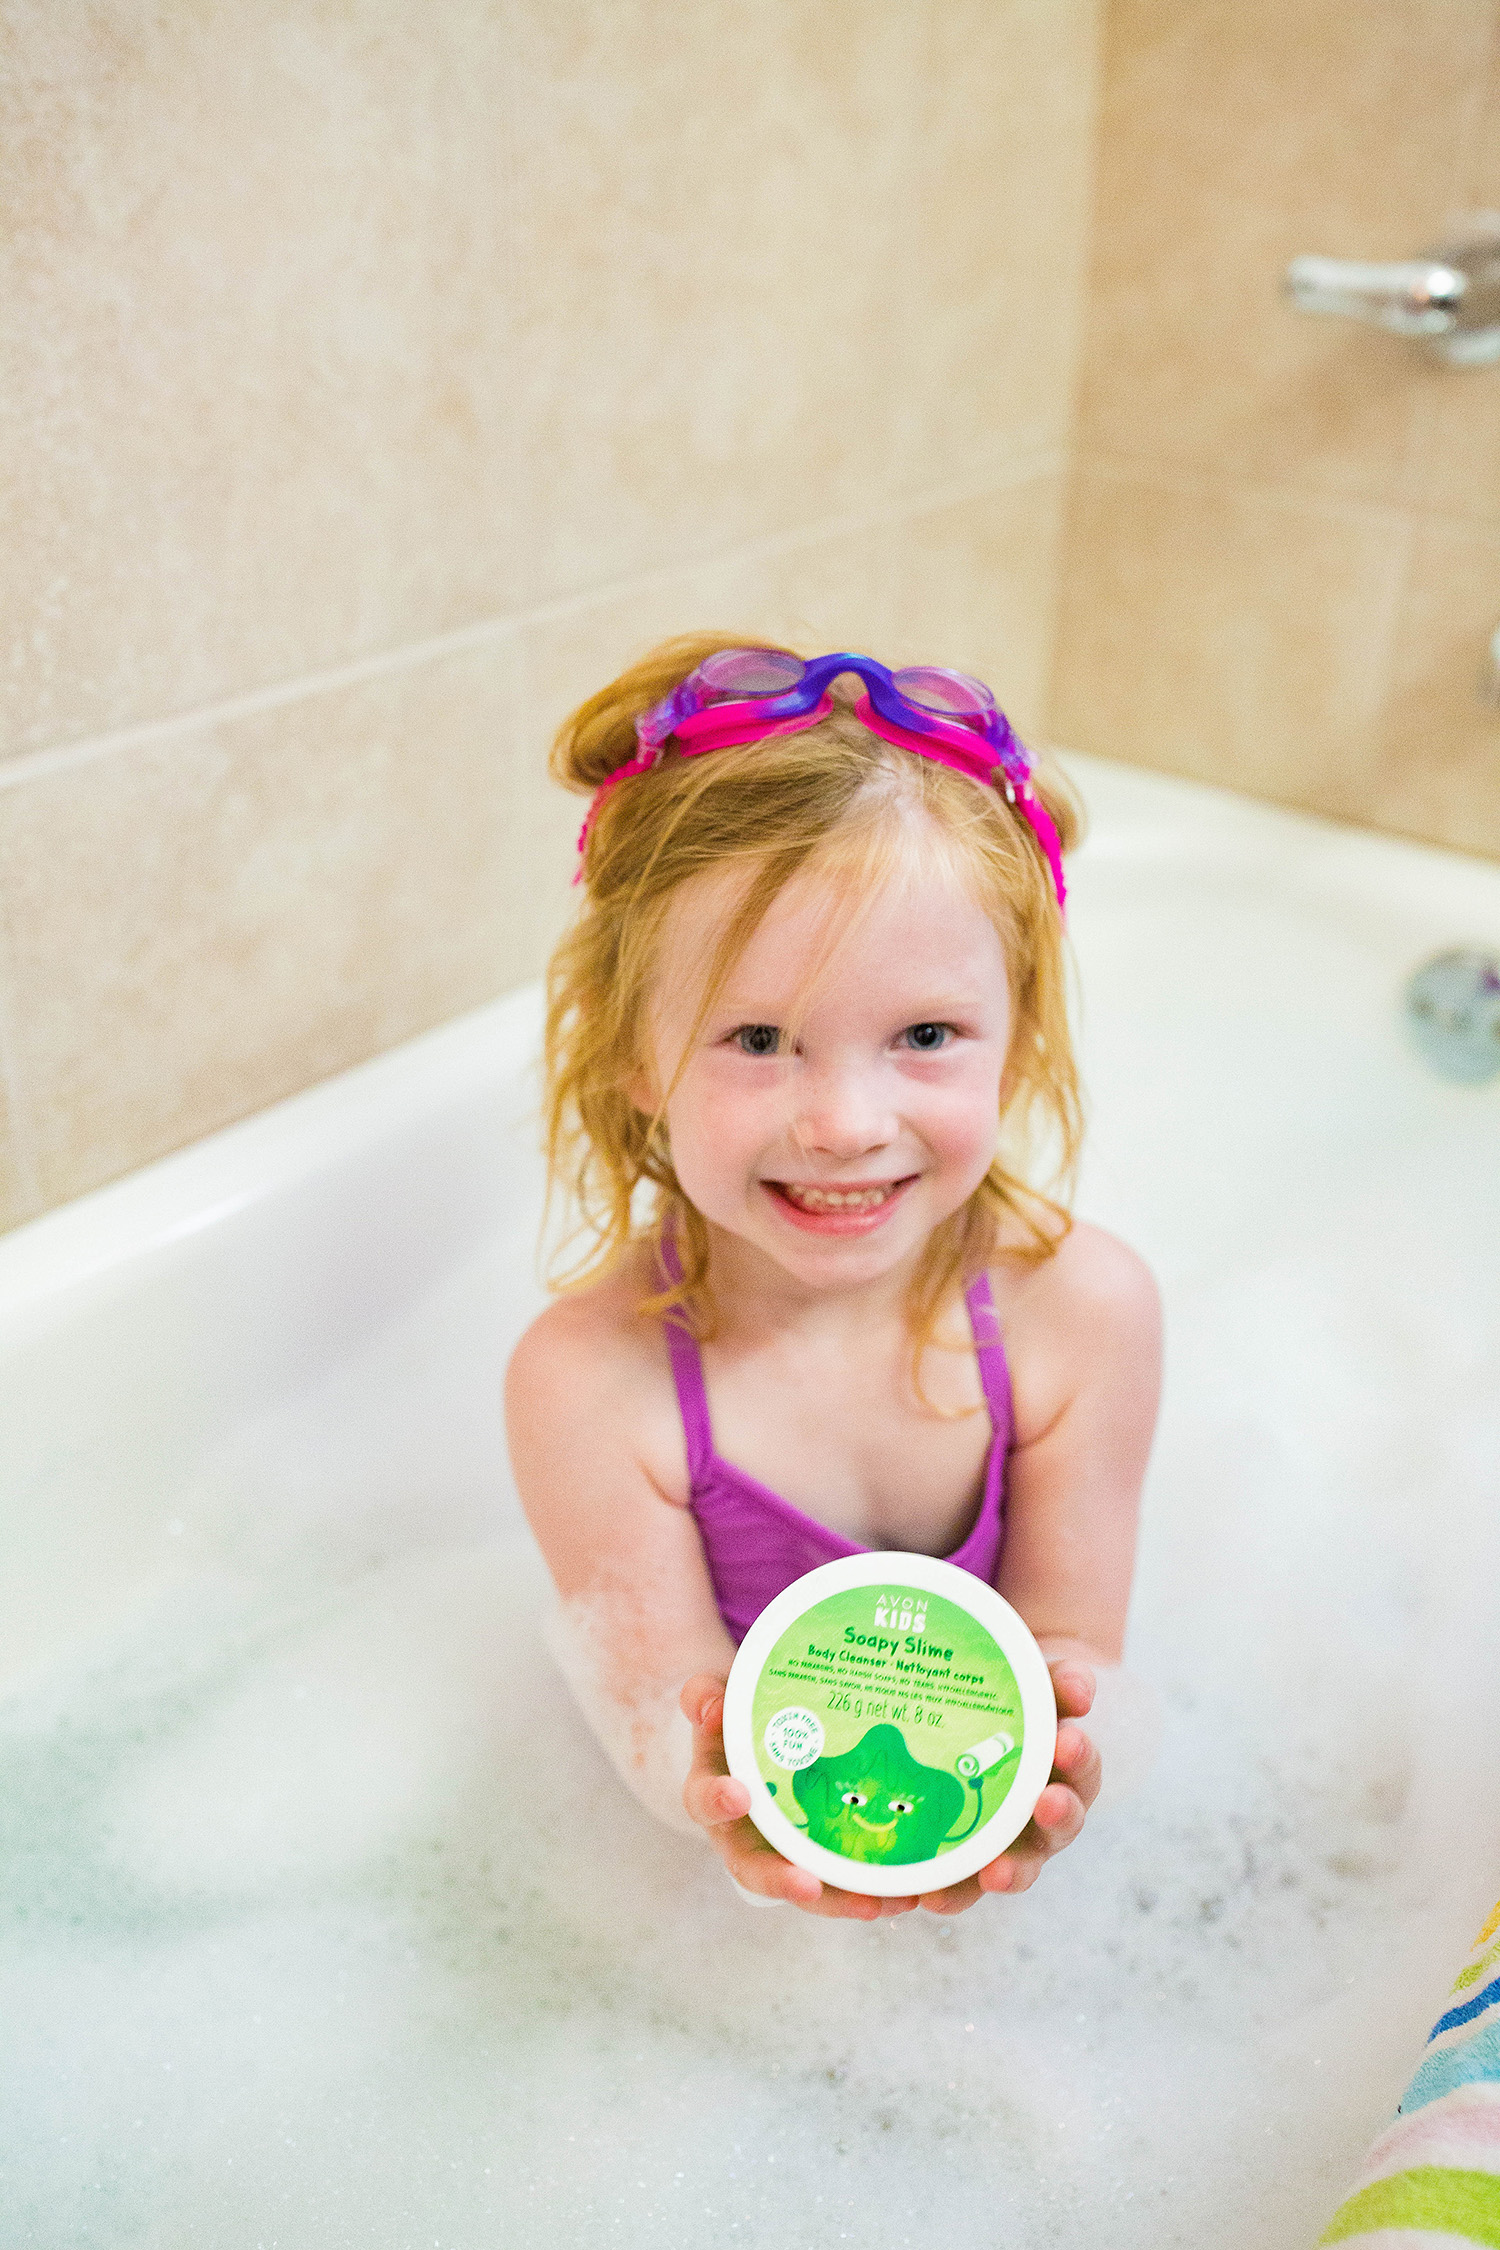 Paraben Free Bath Products: This new soapy slime from avon kids is PERFECT for older kids!